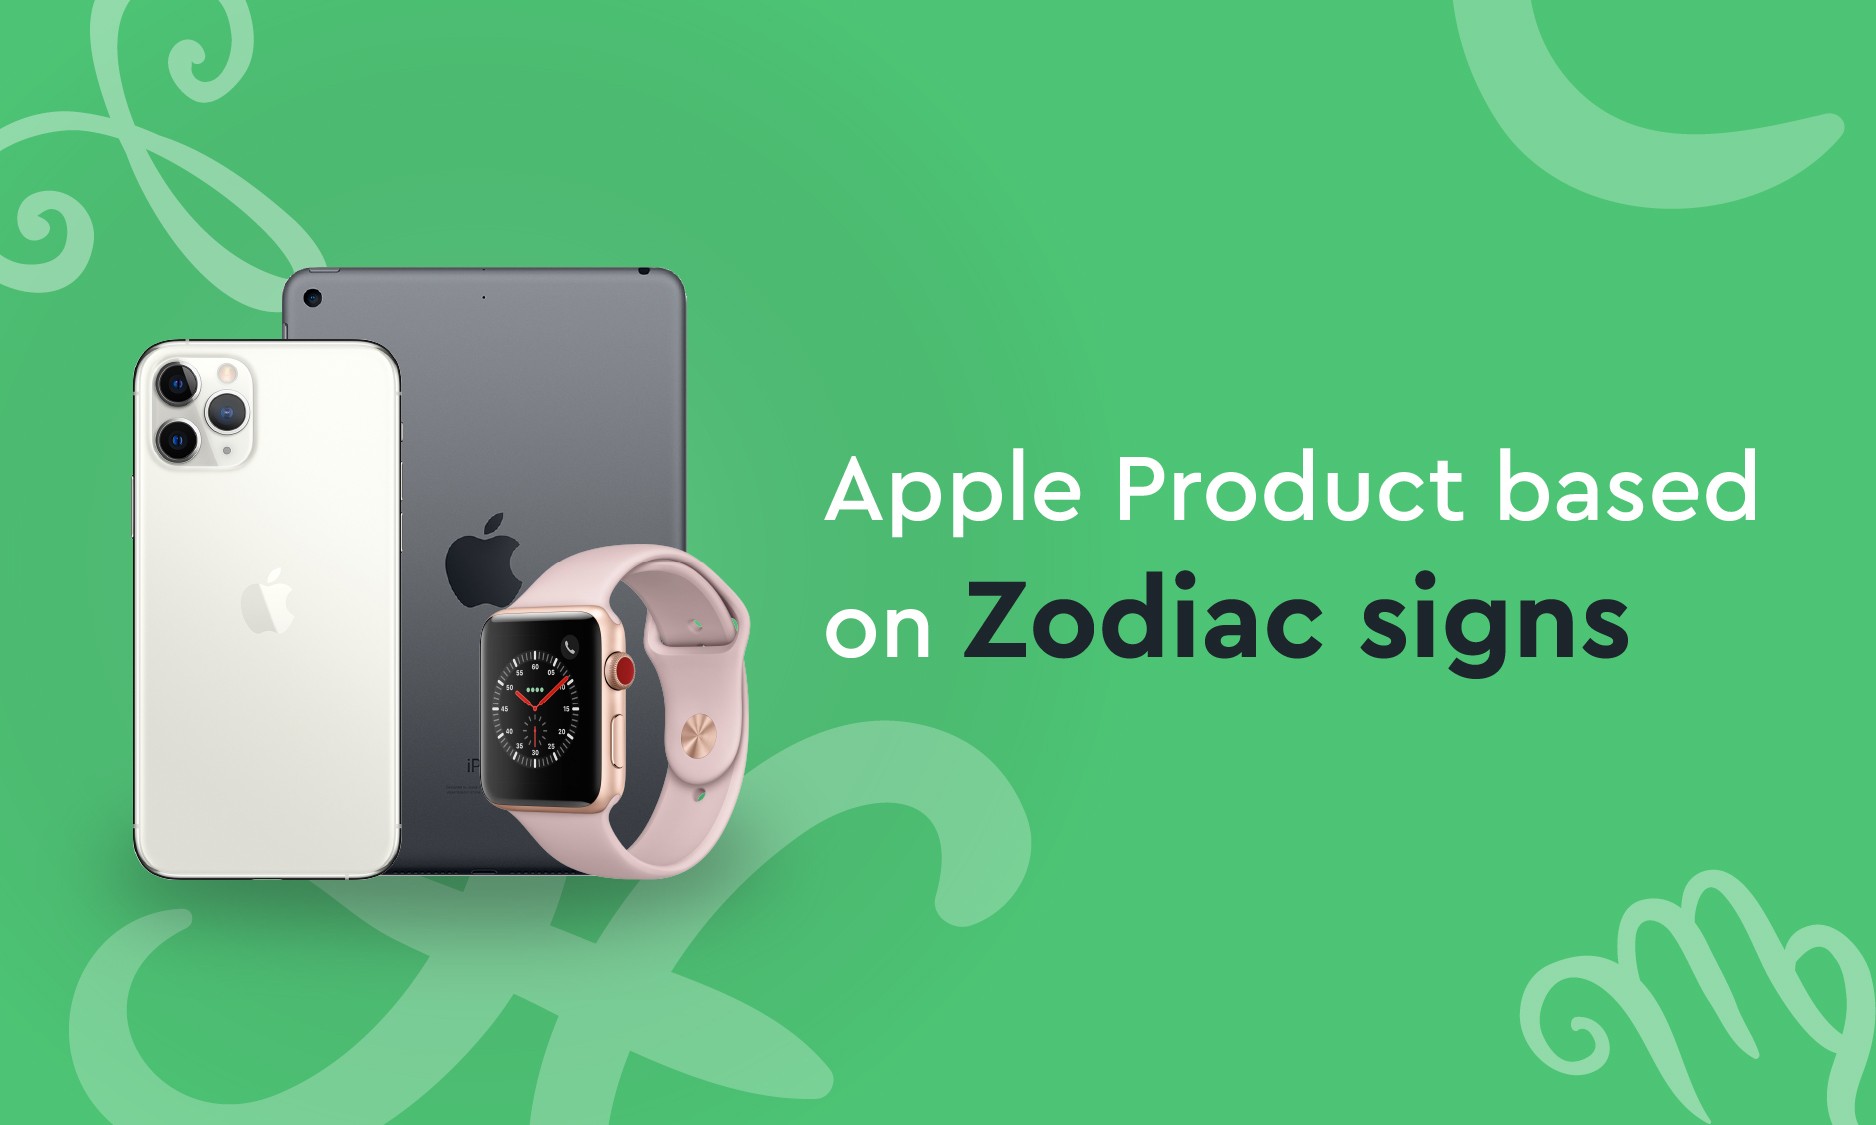 Apple Products Based on Your Zodiac Sign